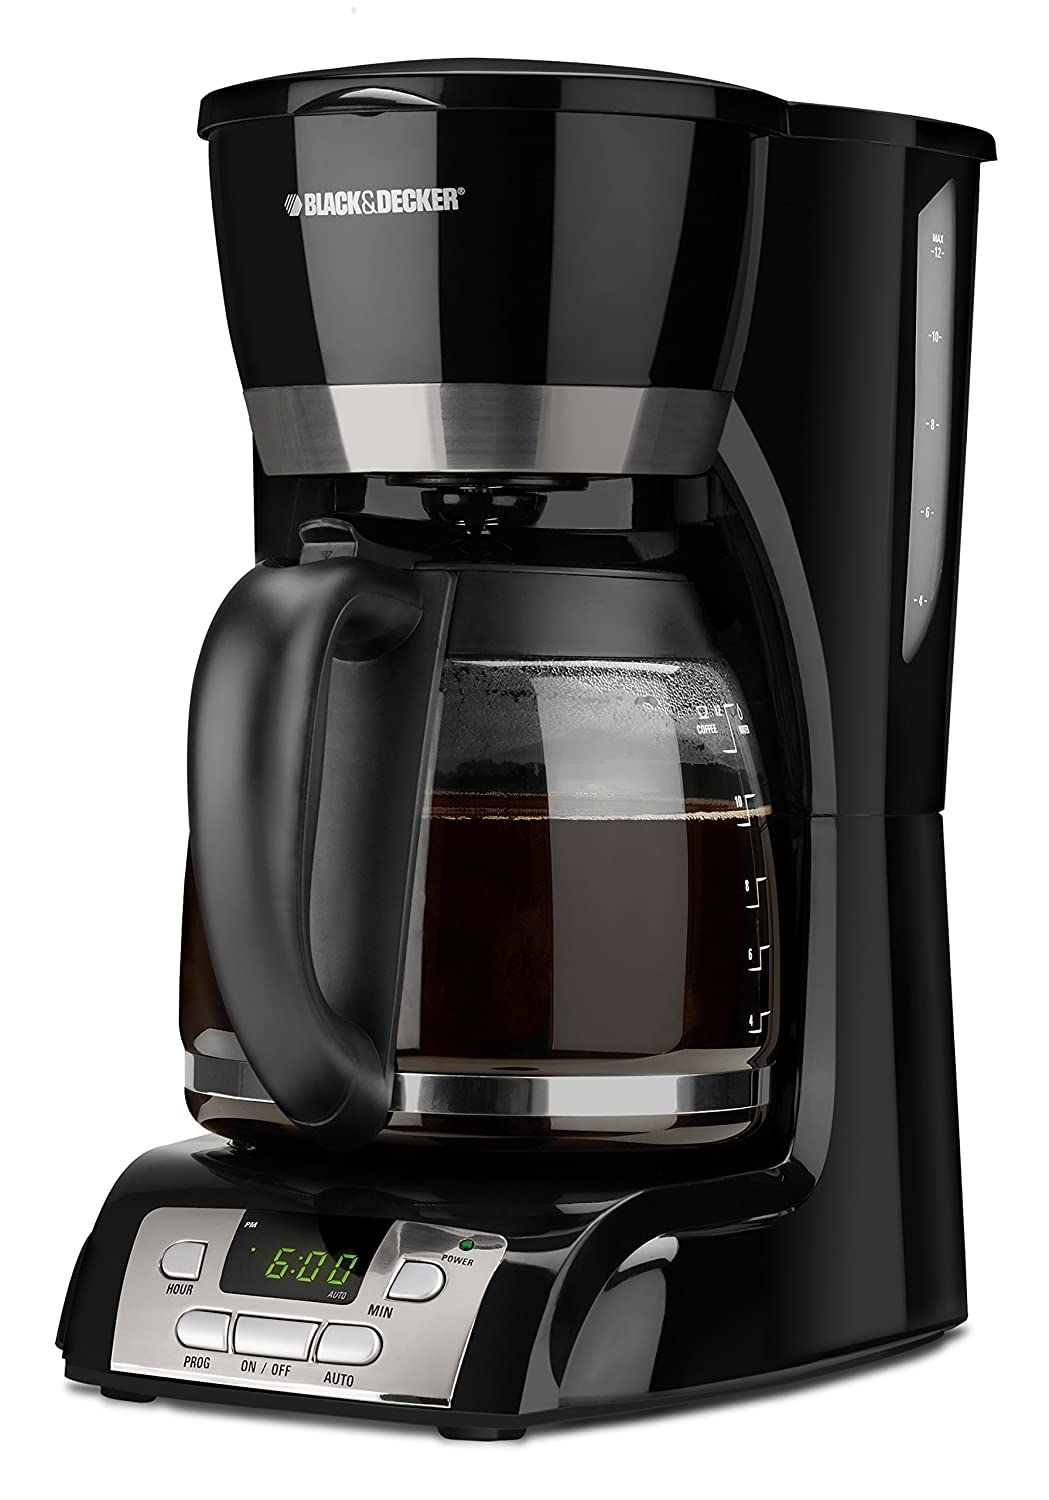 Black and decker coffee maker 12 cup programmable - Amazon Com Black Decker 12 Cup Programmable Coffeemaker Black With Stainless Steel Accents Dcm2160b Drip Coffeemakers Kitchen Dining